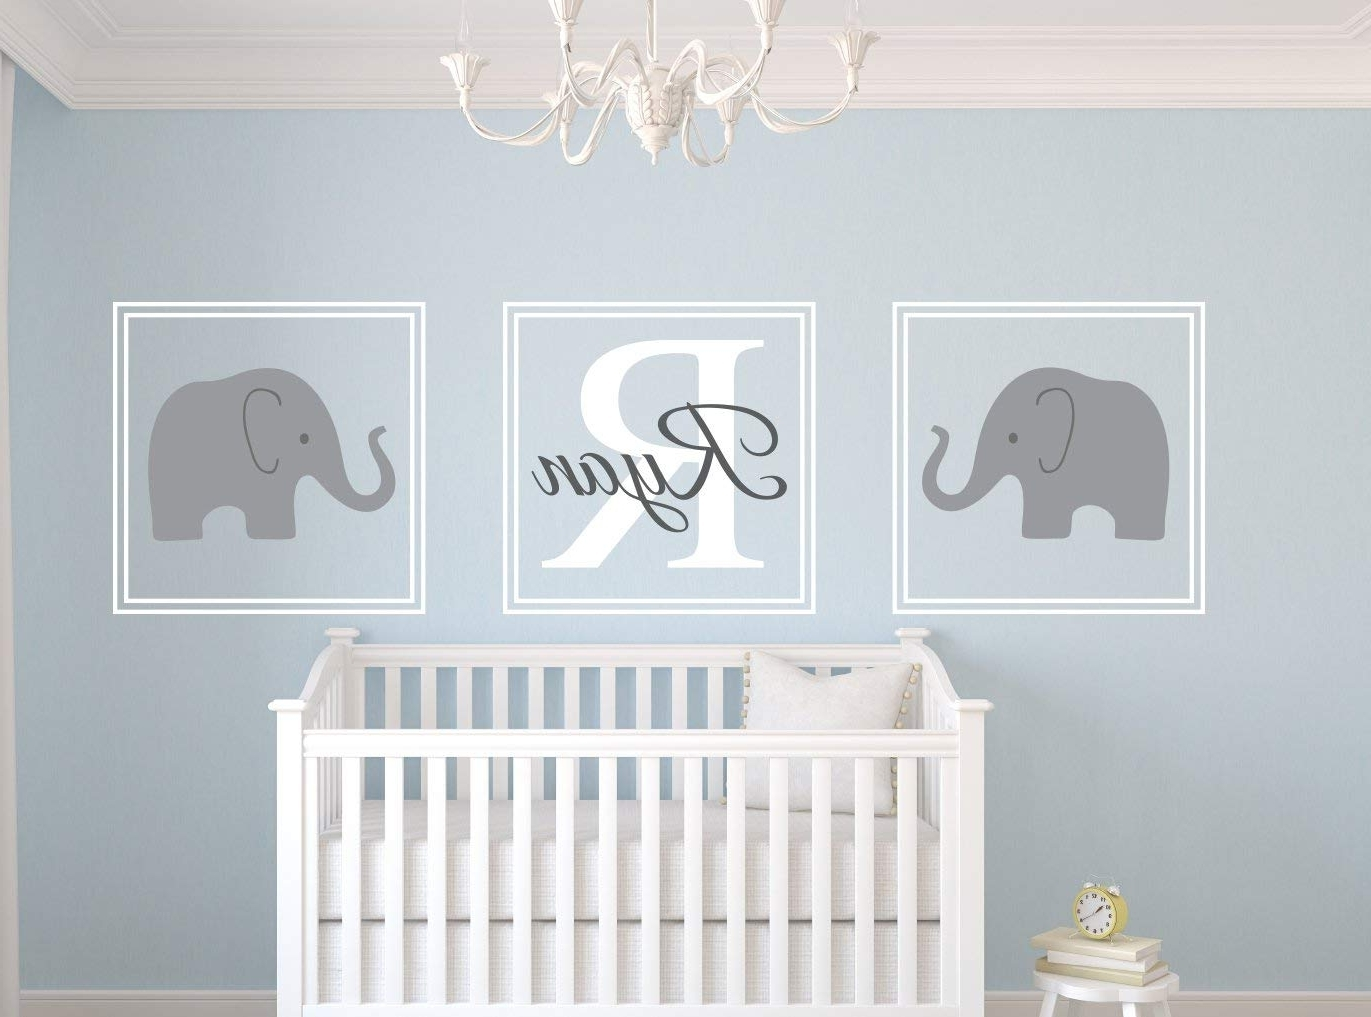 Favorite Name Wall Art For Amazon : Elephant Name Wall Decal Set Nursery Wall Decor : Baby (View 5 of 15)